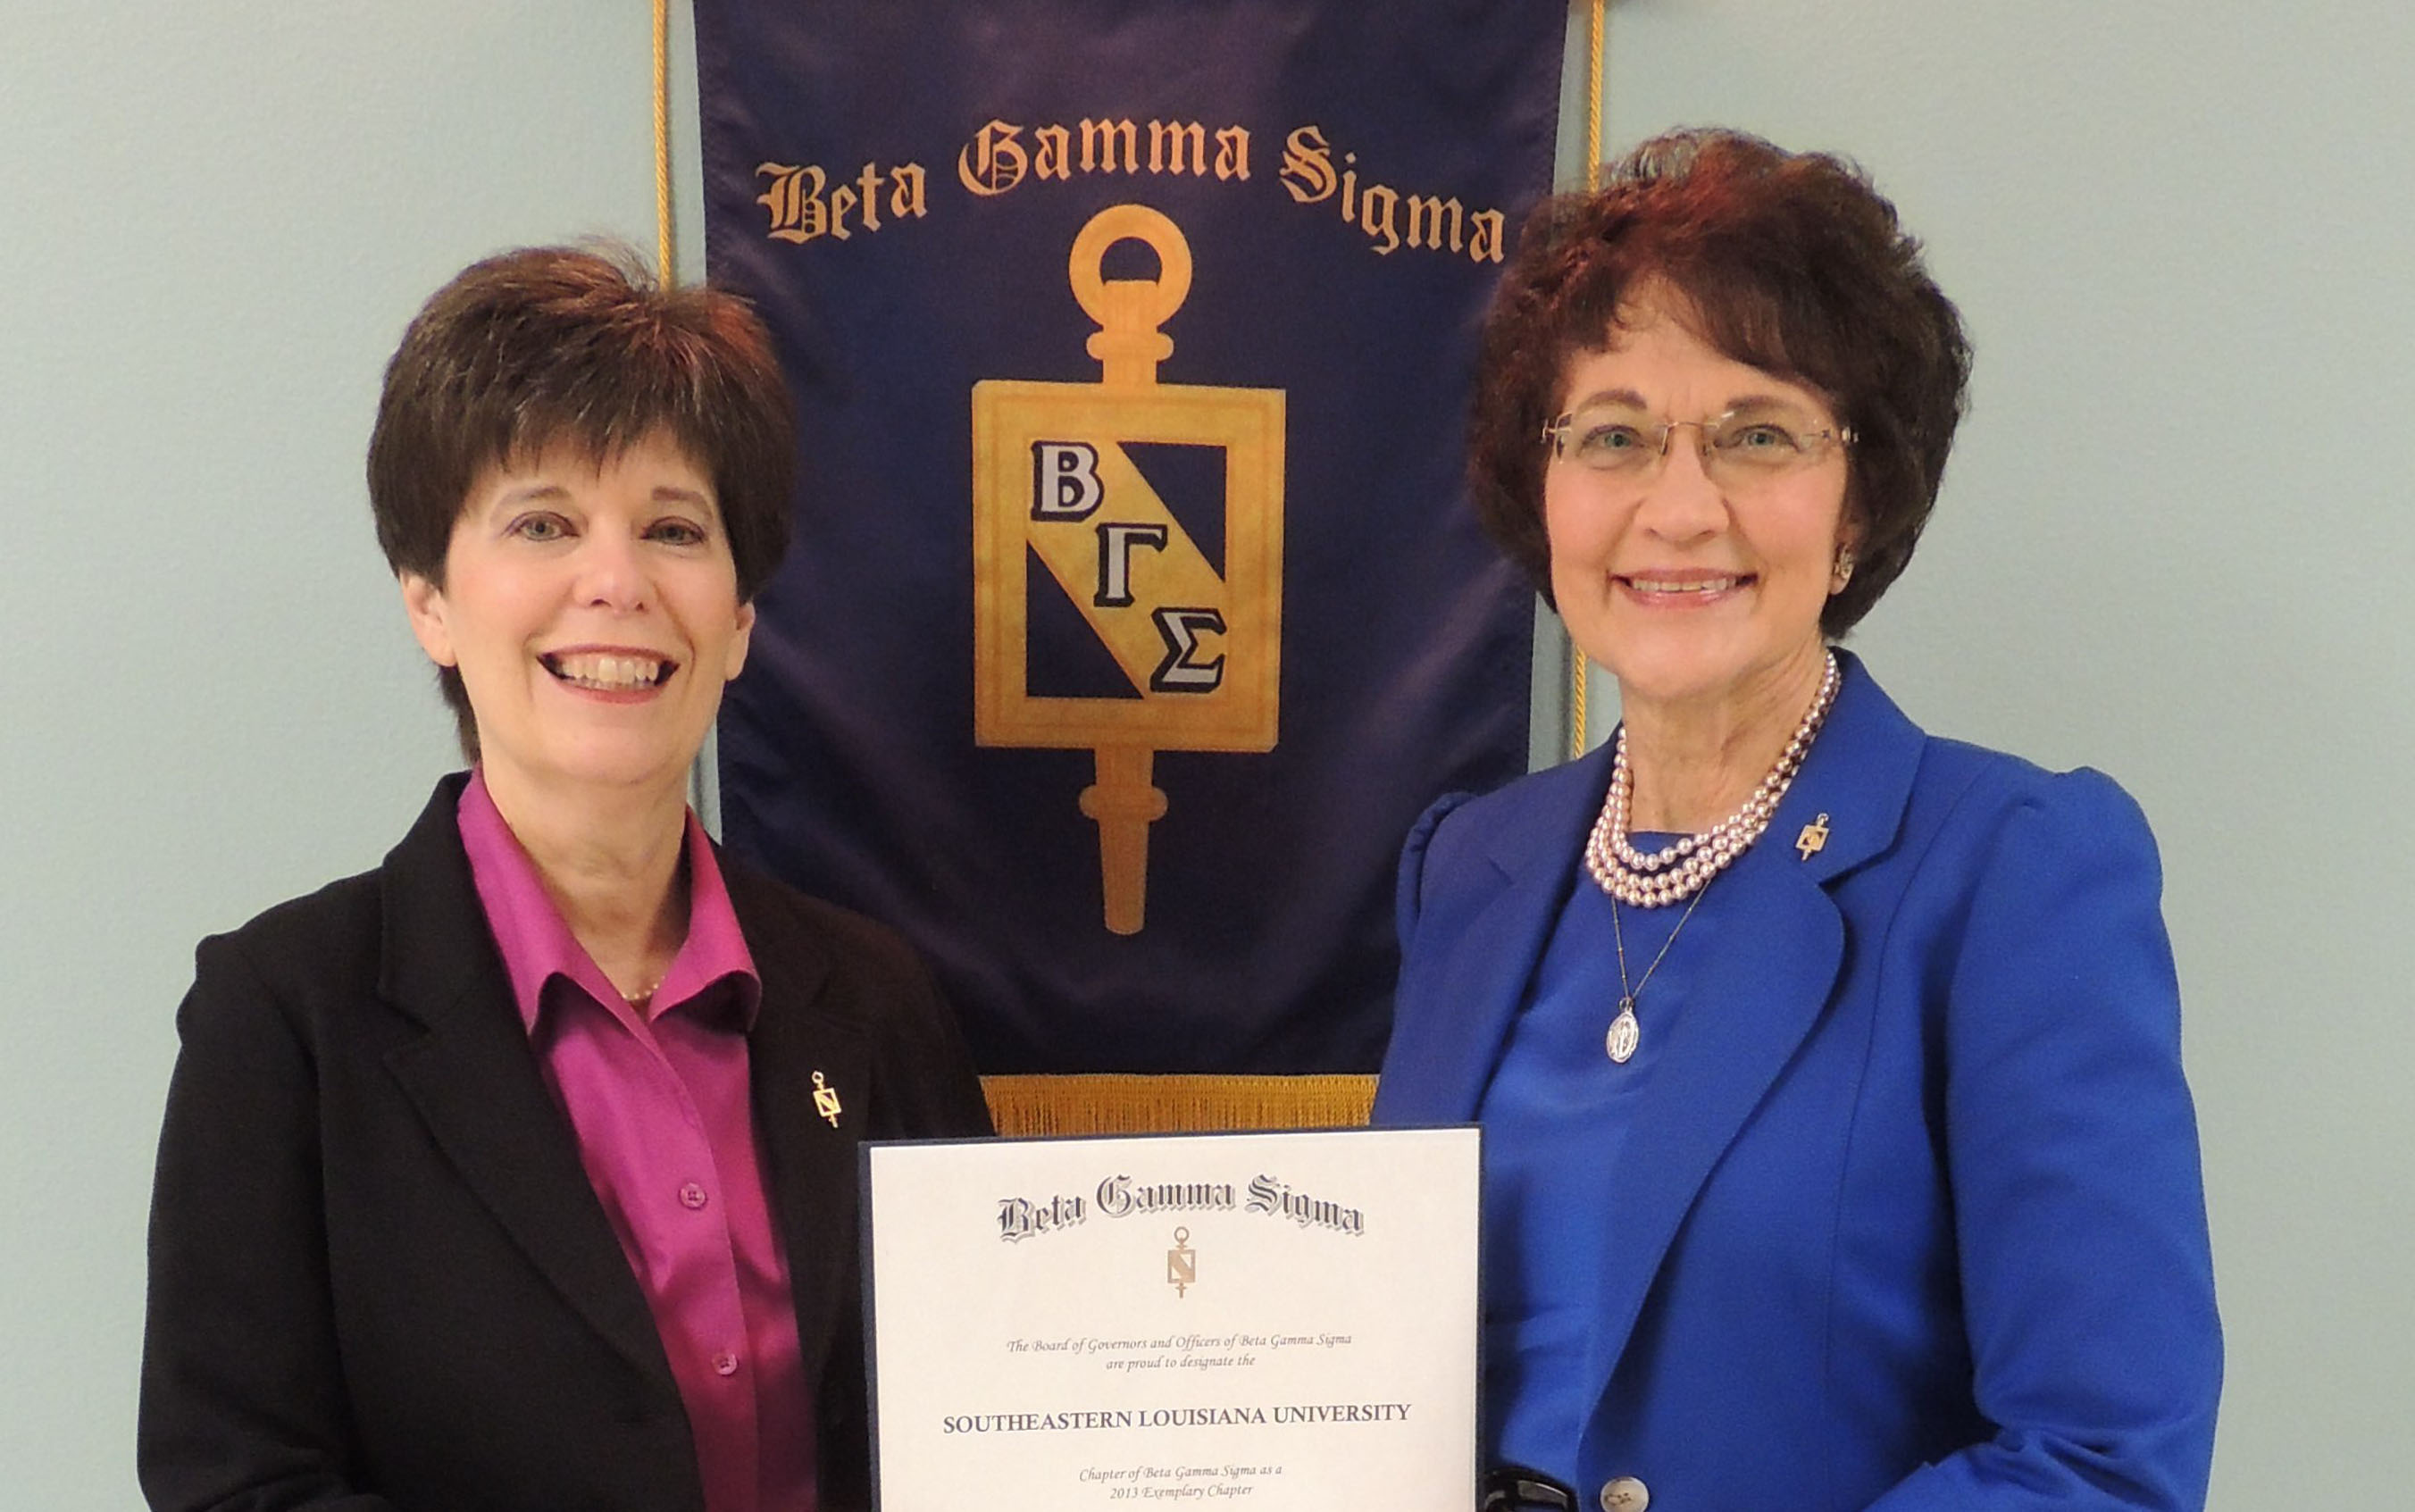 Beta Gamma Sigma receives award